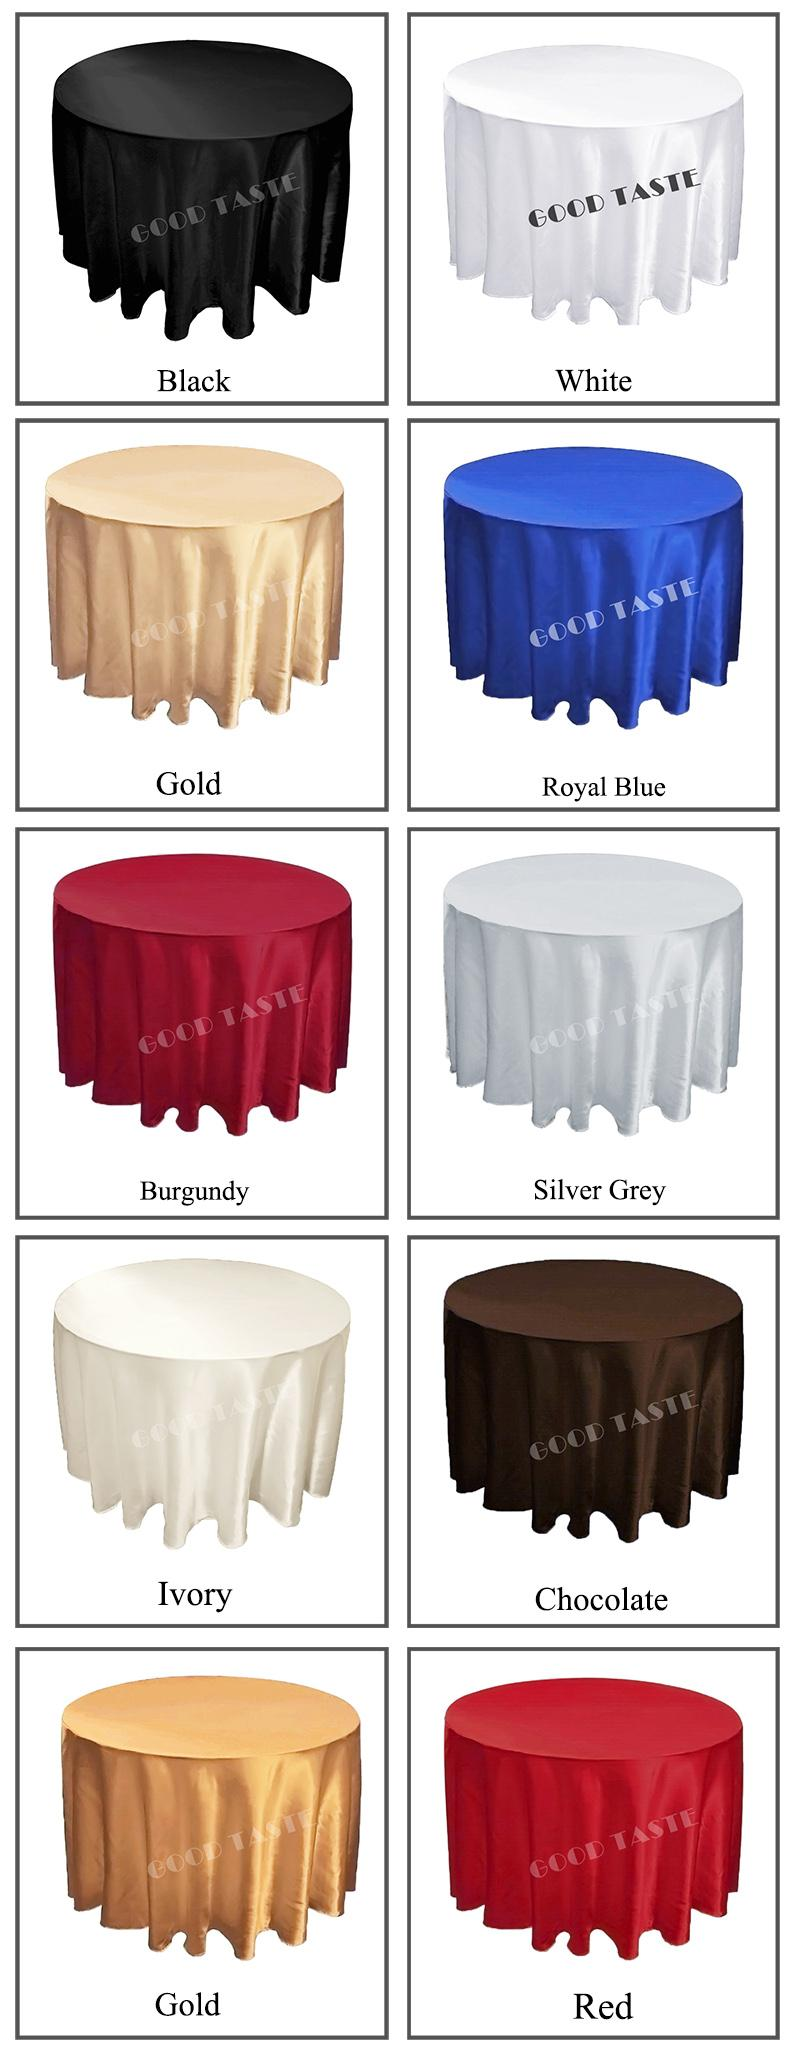 no matter in party hotel restaurant and wedding event a table cloth inexpensive tablecloths is a important decoration so weu0027ve collect many styles of